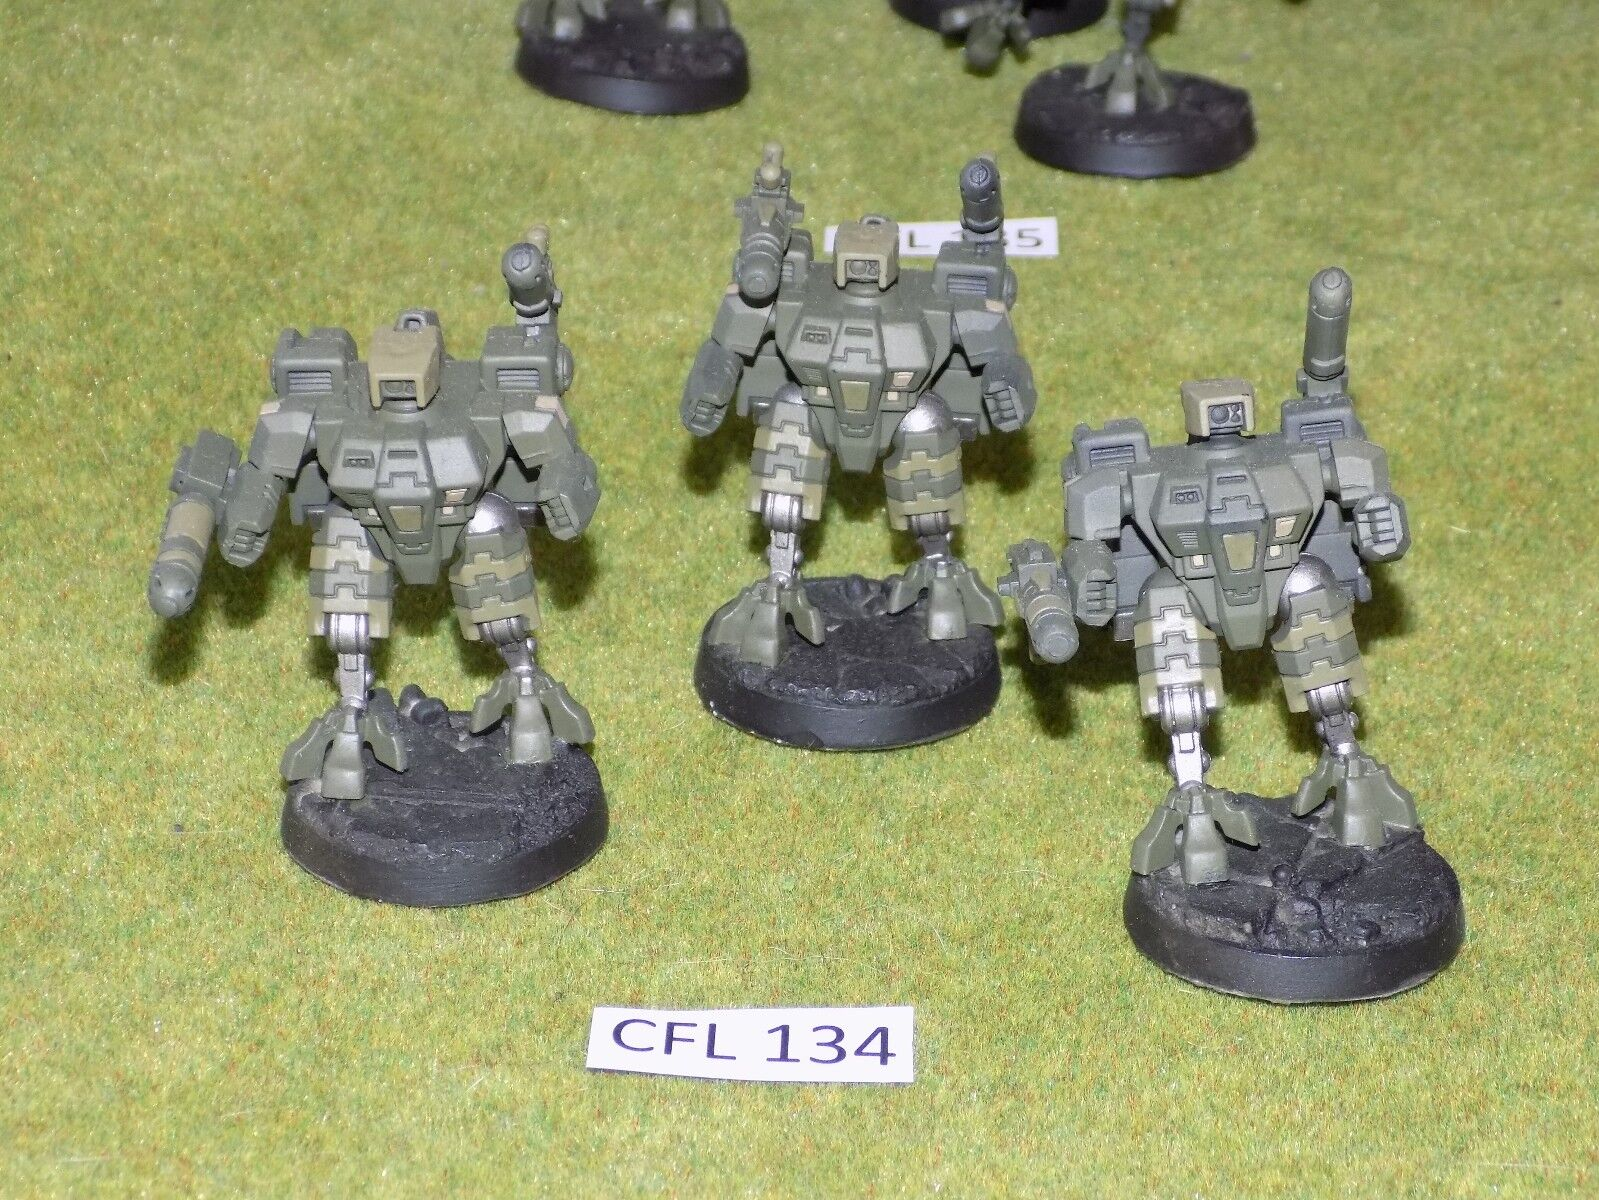 Warhammer 40k Tau 3 CRISIS BATTLESUITS built painted on resin bases (CFL 134)